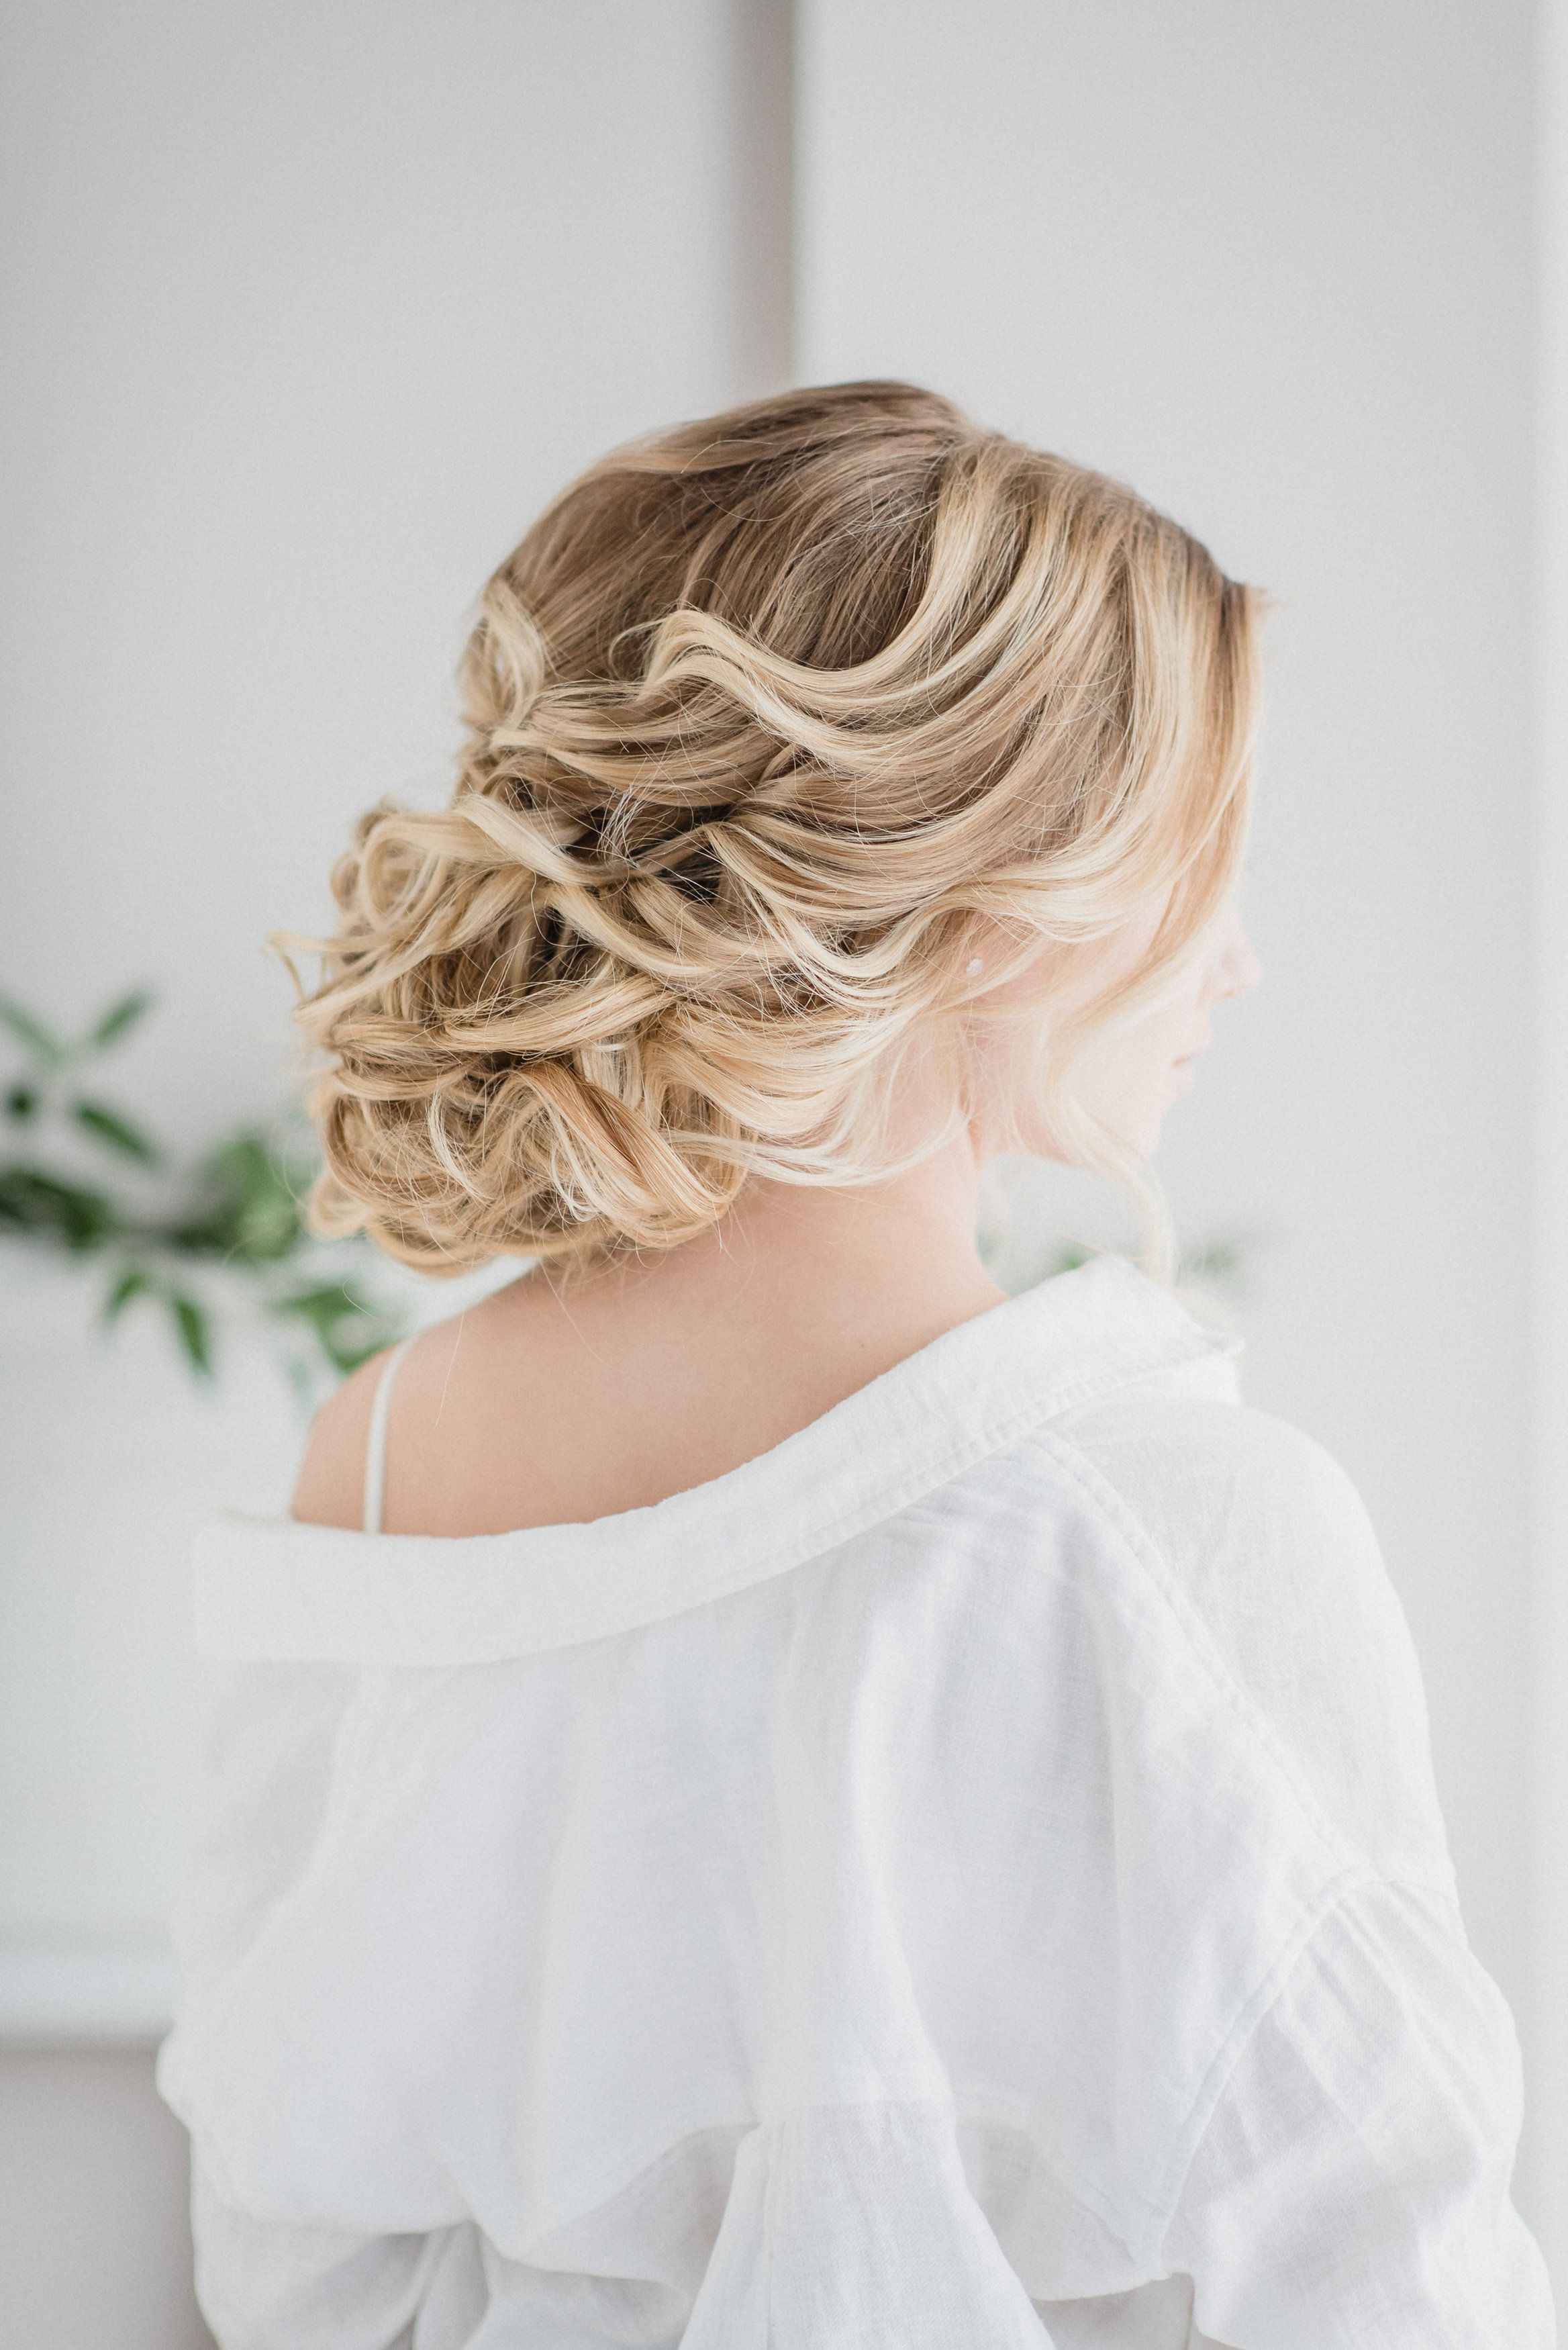 9 Expert Tips for Perfect Wedding Day Hair | Perfect wedding, Updo ...